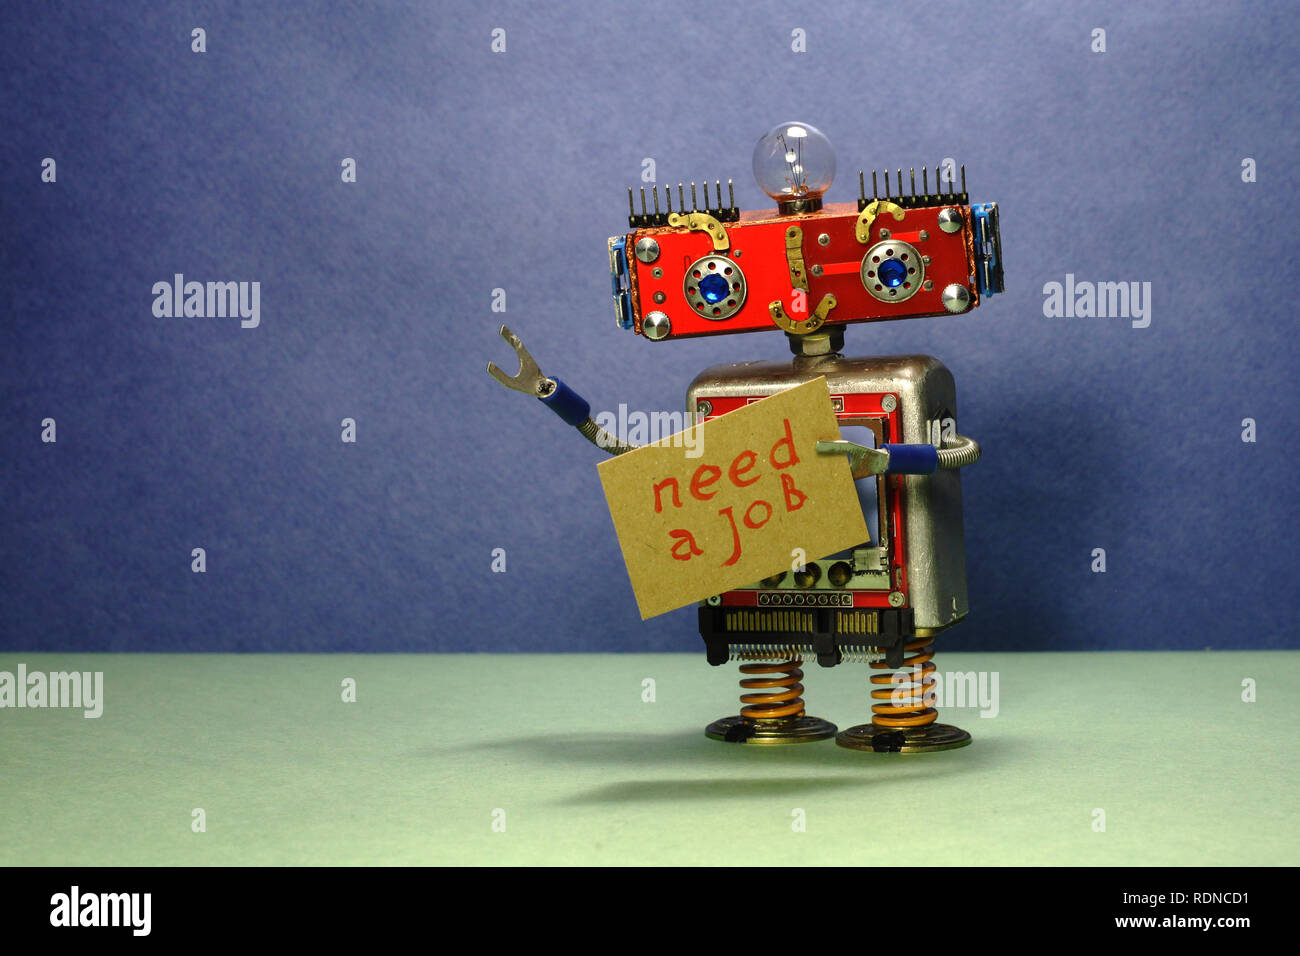 Job Search Advert Unemployed Red Robot Wants To Get A Job Funny Toy Robot With A Cardboard Sign And Handwritten Text Need A Job Blue Green Background Stock Photo Alamy